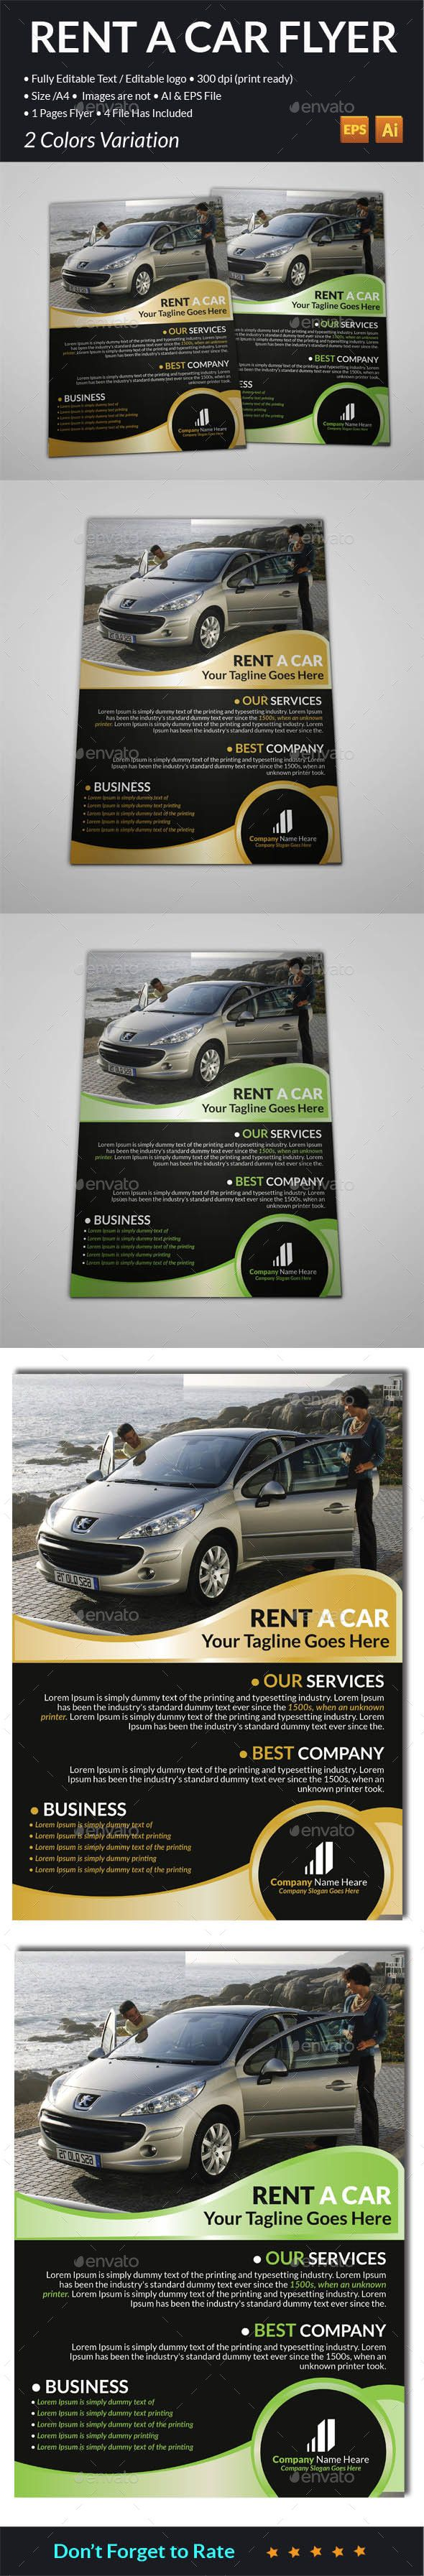 Rent A Car Flyer Vector Eps #Car #Design Available Here